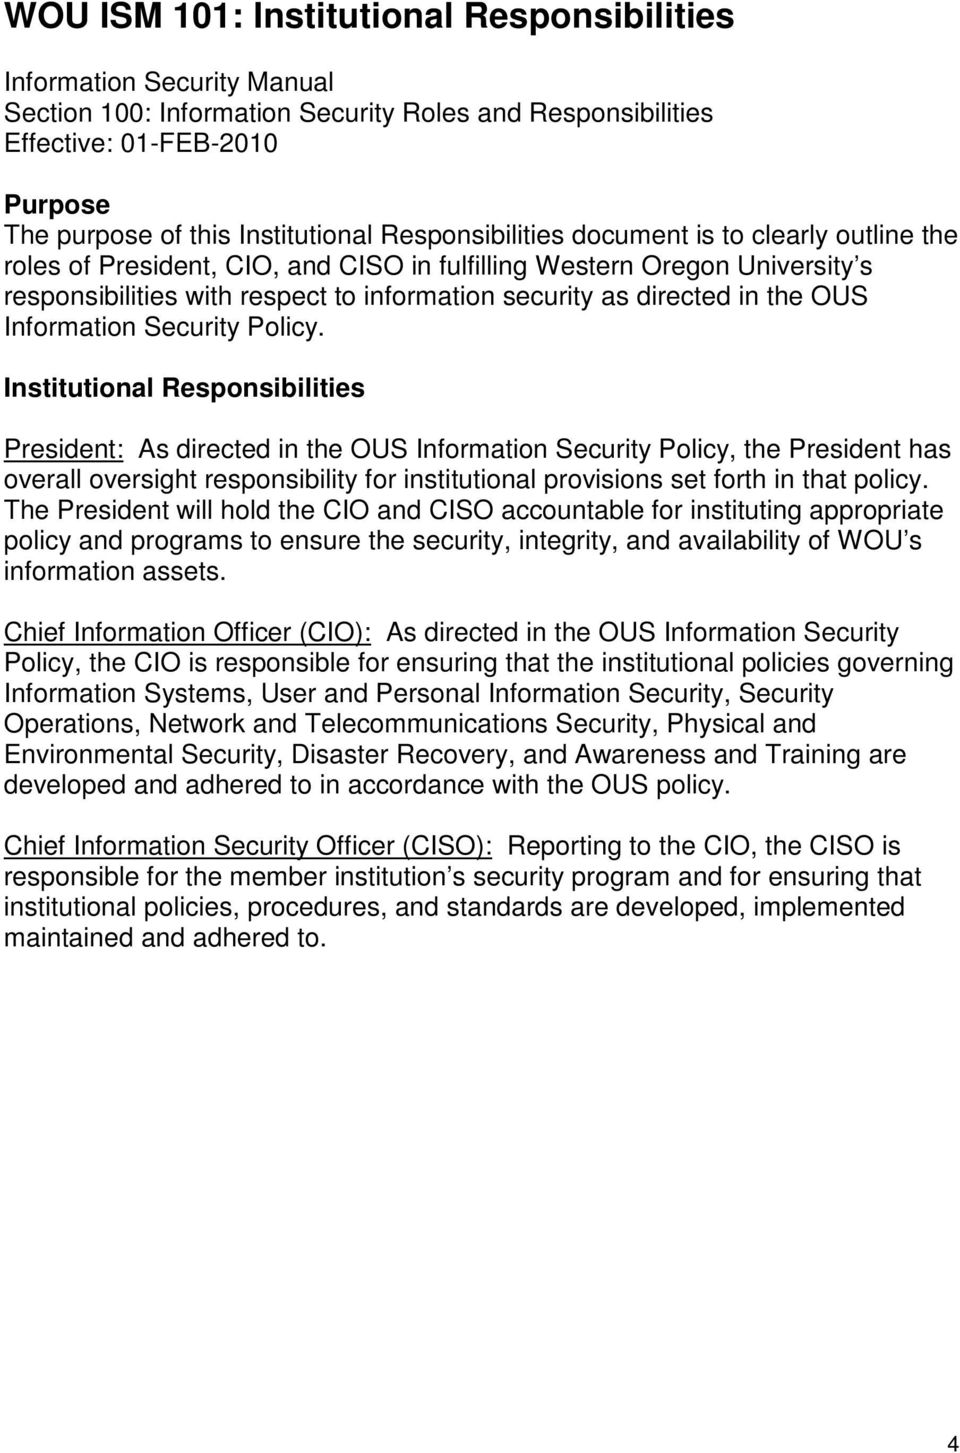 Institutional Responsibilities President: As directed in the OUS Information Security Policy, the President has overall oversight responsibility for institutional provisions set forth in that policy.